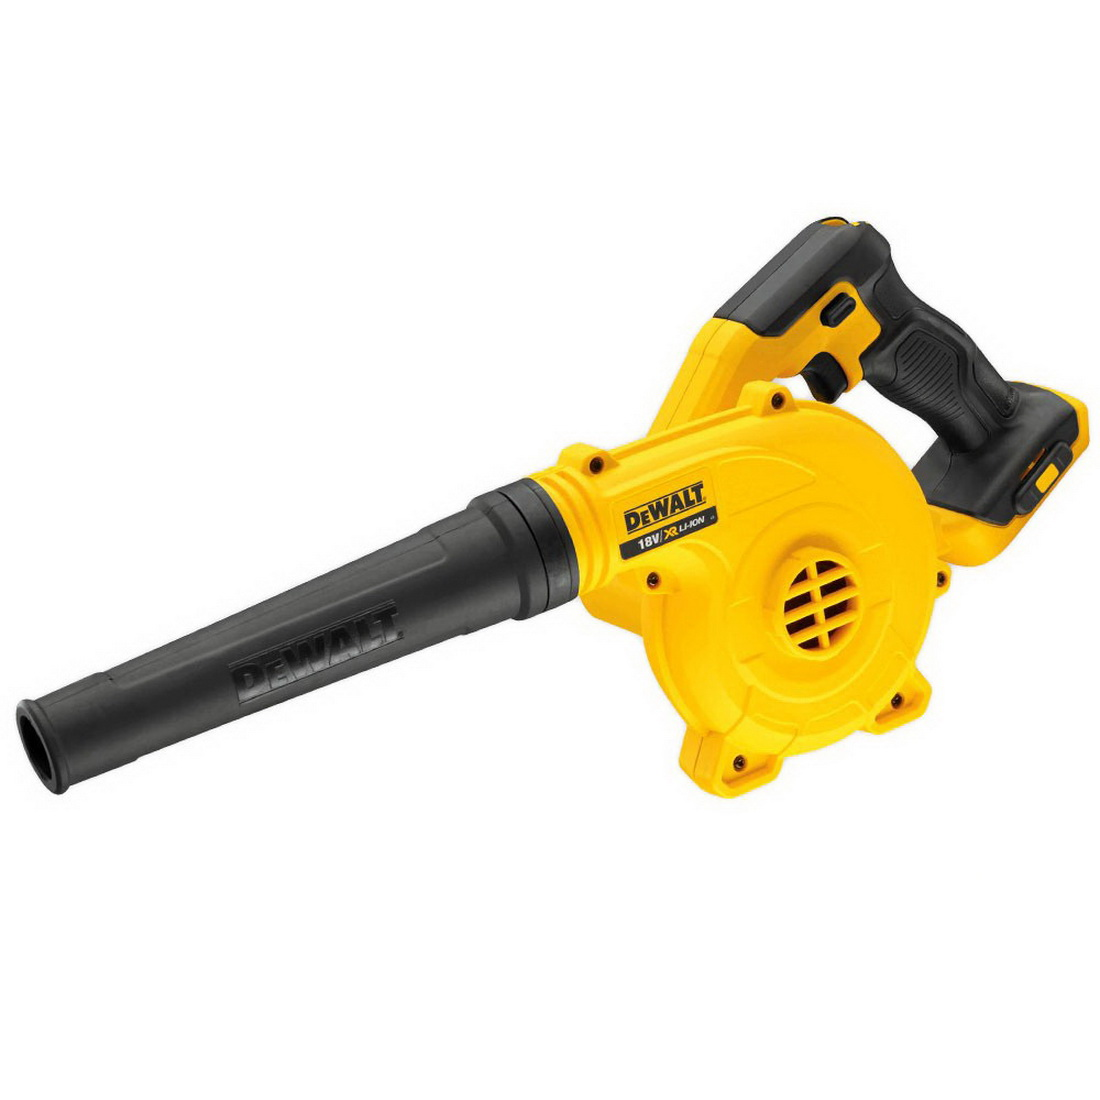 18V 265W Lithium-Ion Cordless Compact Jobsite Blower Skin